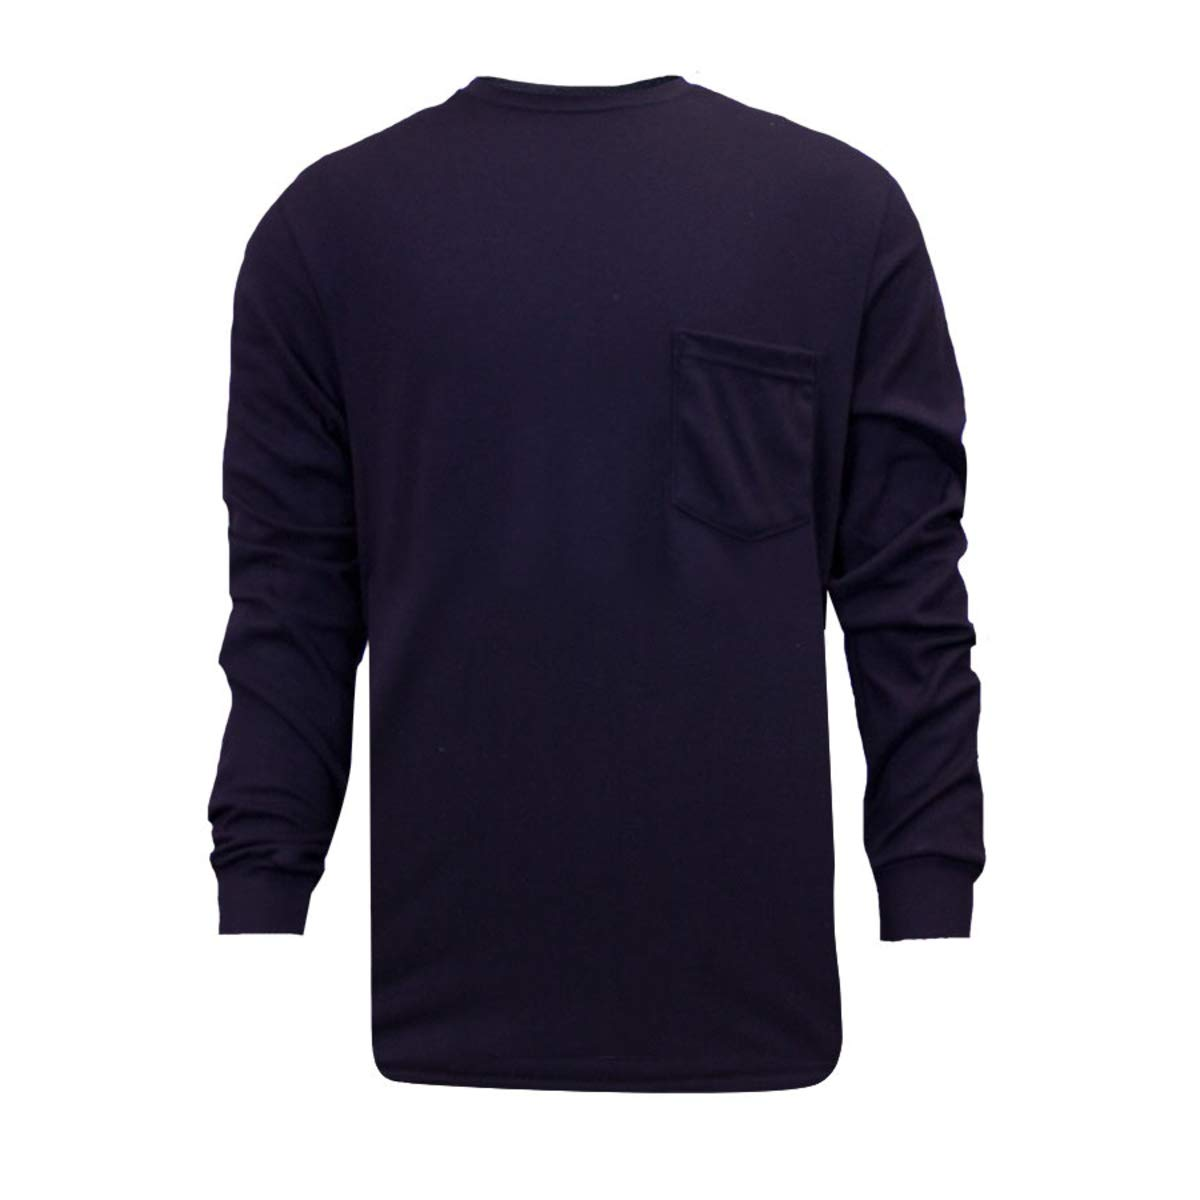 National Safety Apparel Large Navy Classic Cotton 12 cal/cm Flame Resistant Long Sleeve T-Shirt